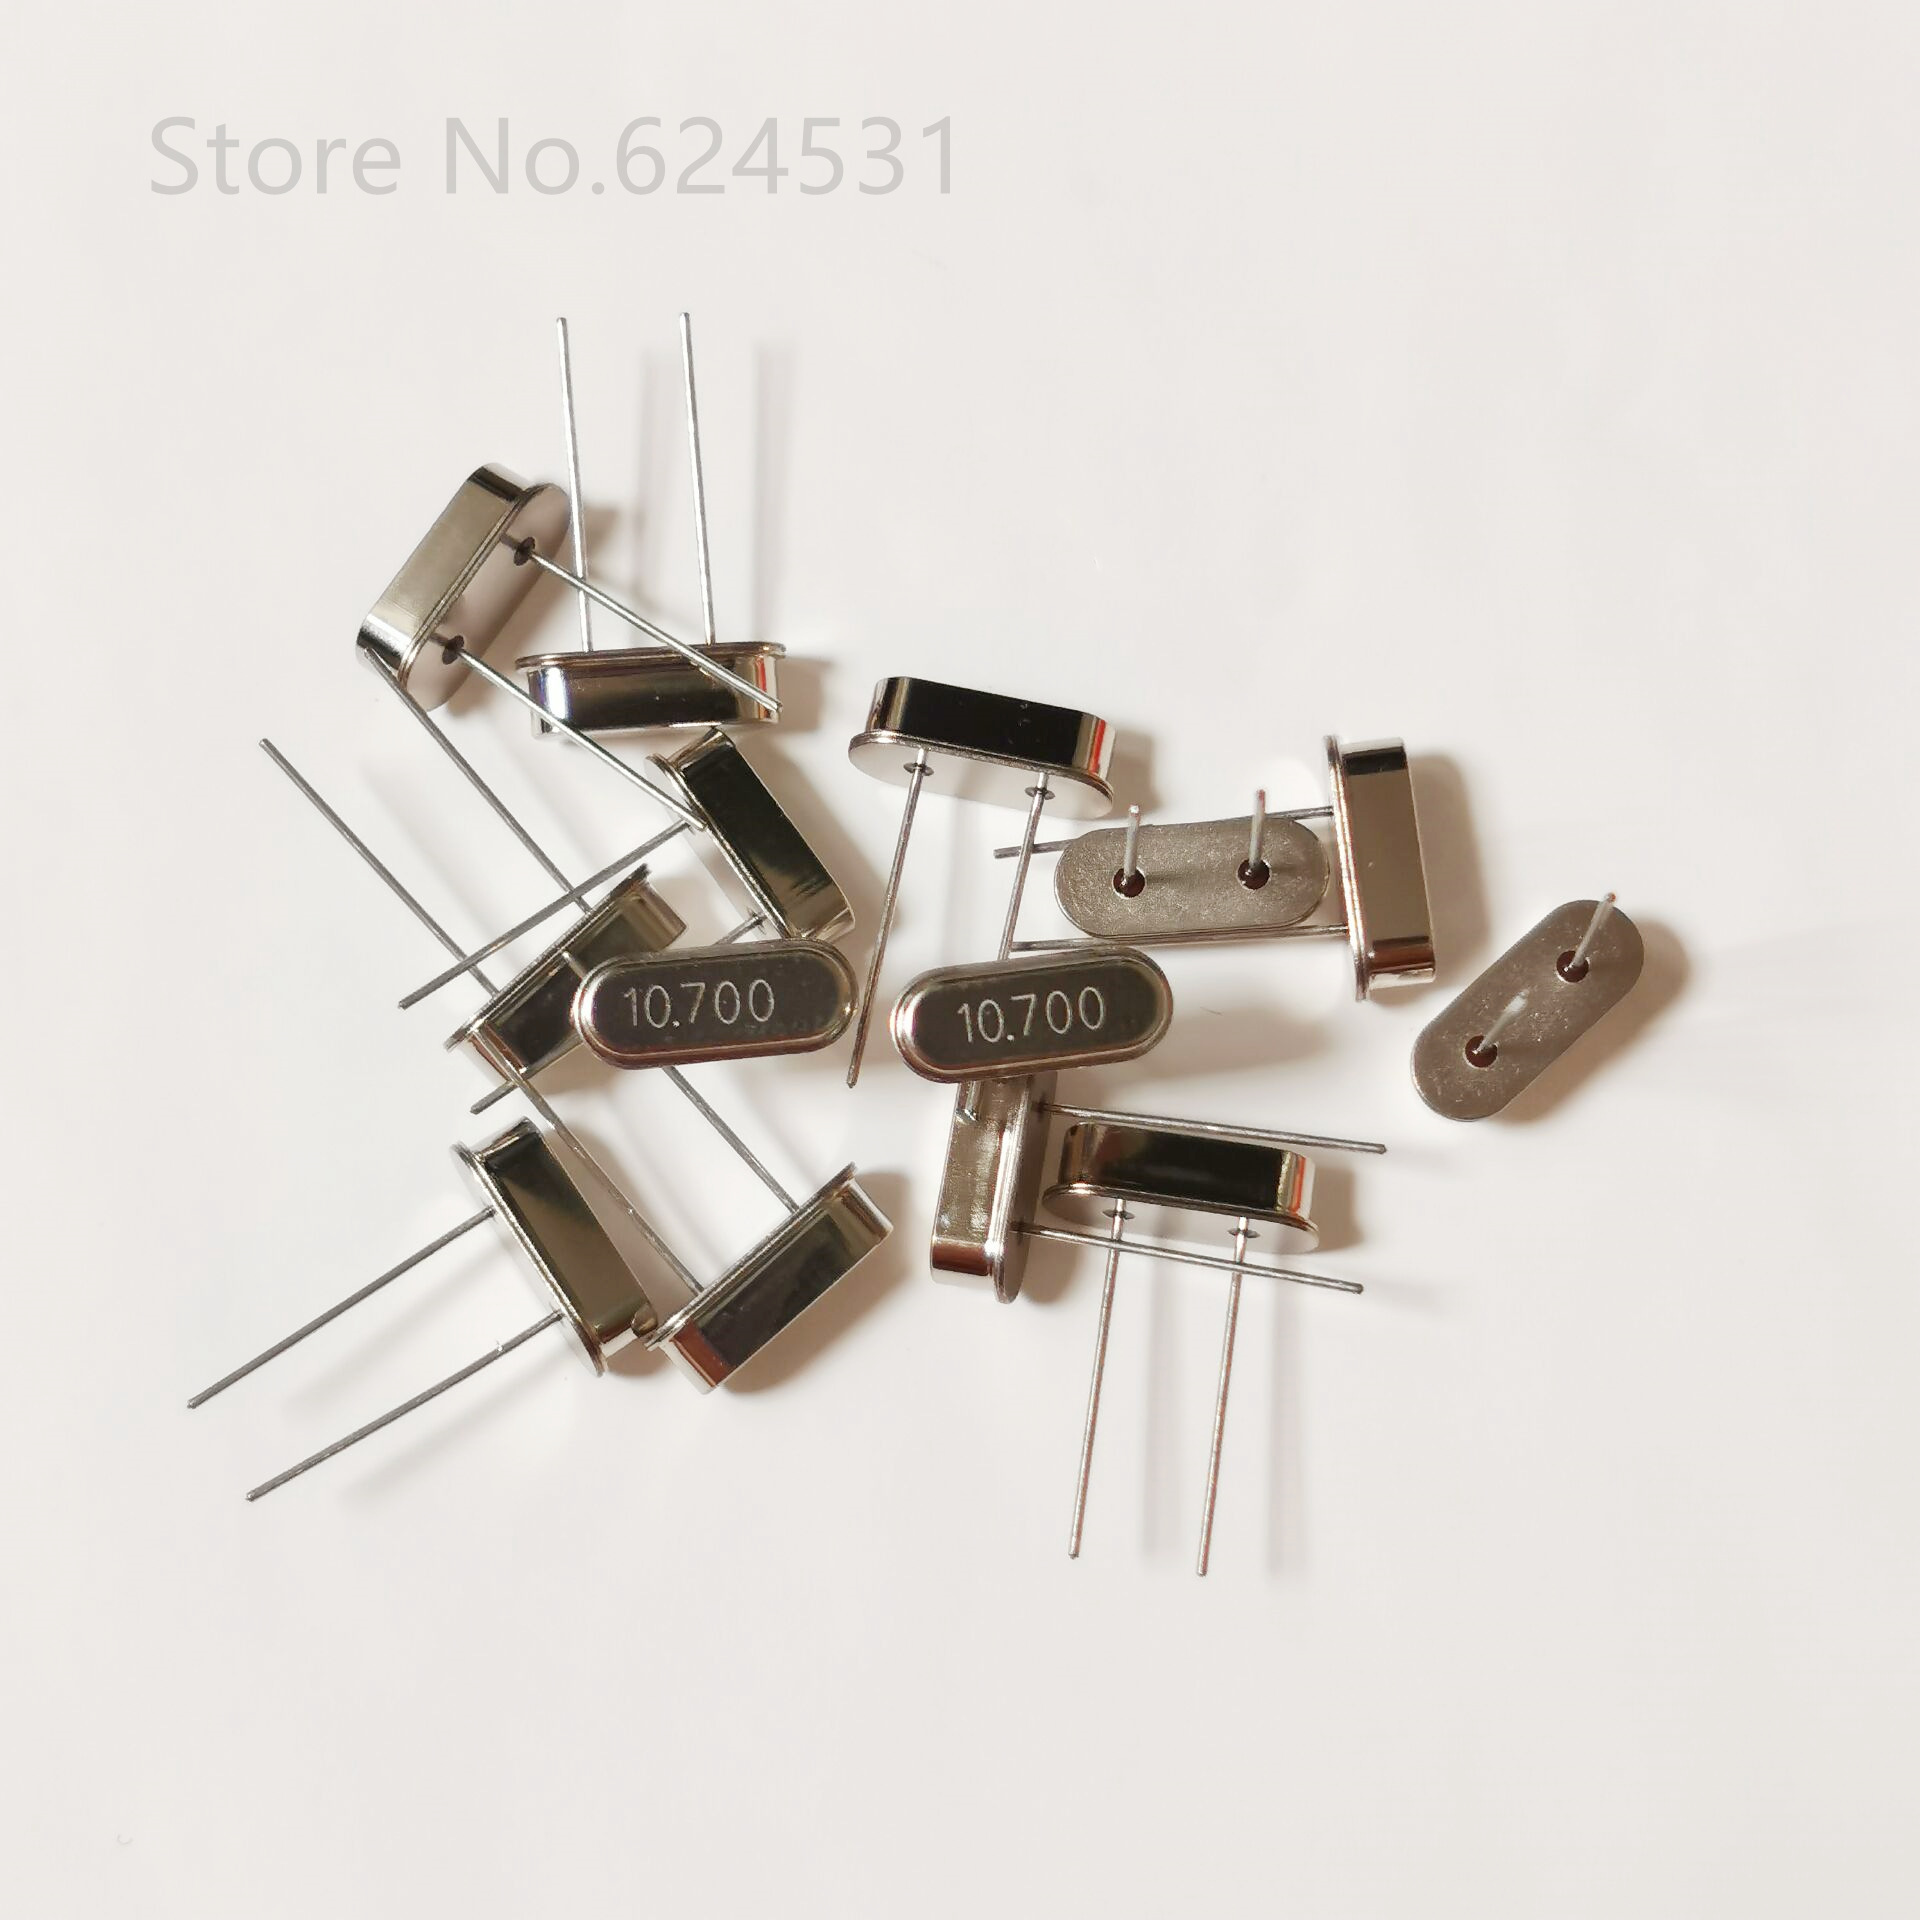 10pcs Quartz Crystal Resonator Crystal Oscillator 10.7M 10.7MHZ HC-49S In-line 2-pin Resonator